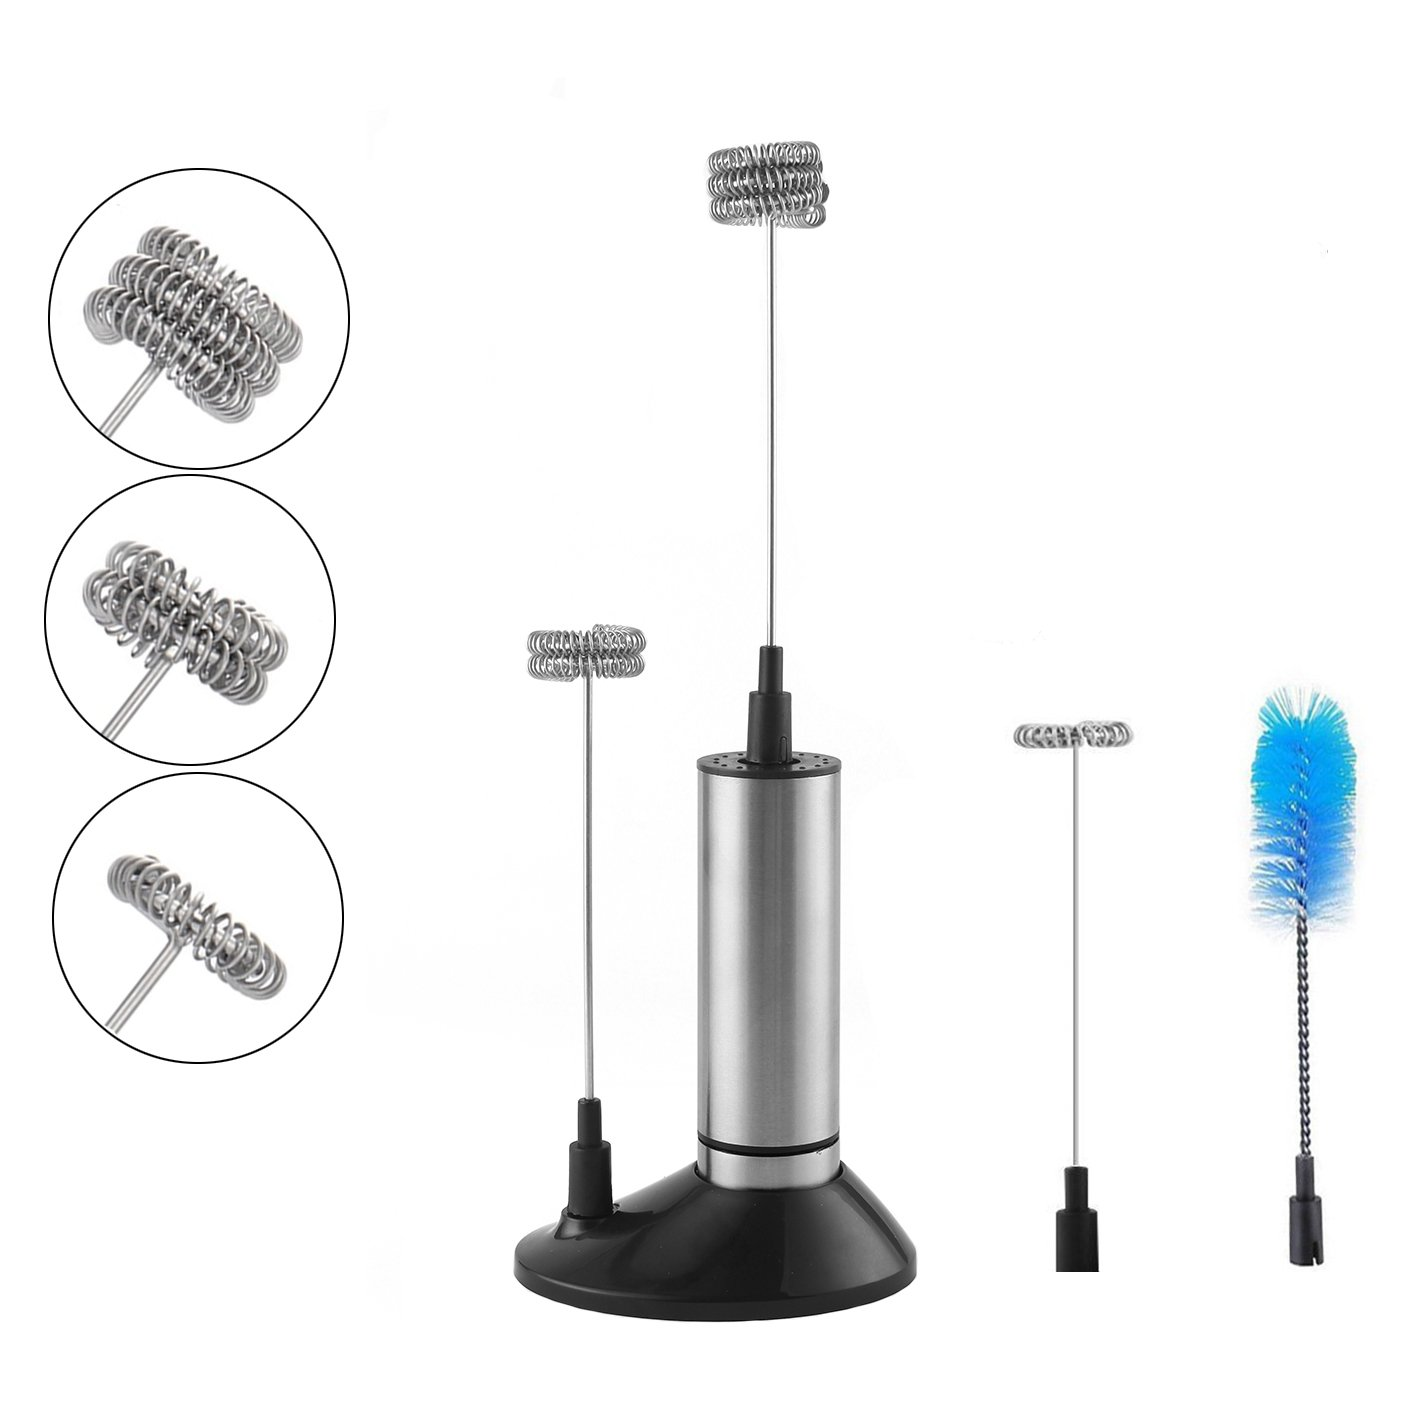 Handheld Milk Frother, Battery Operated Whisk, H-Min Electric Foam Maker with Stainless Steel Whisk Include 3 Milk Whisk Head, a Storage Stand and a Brush